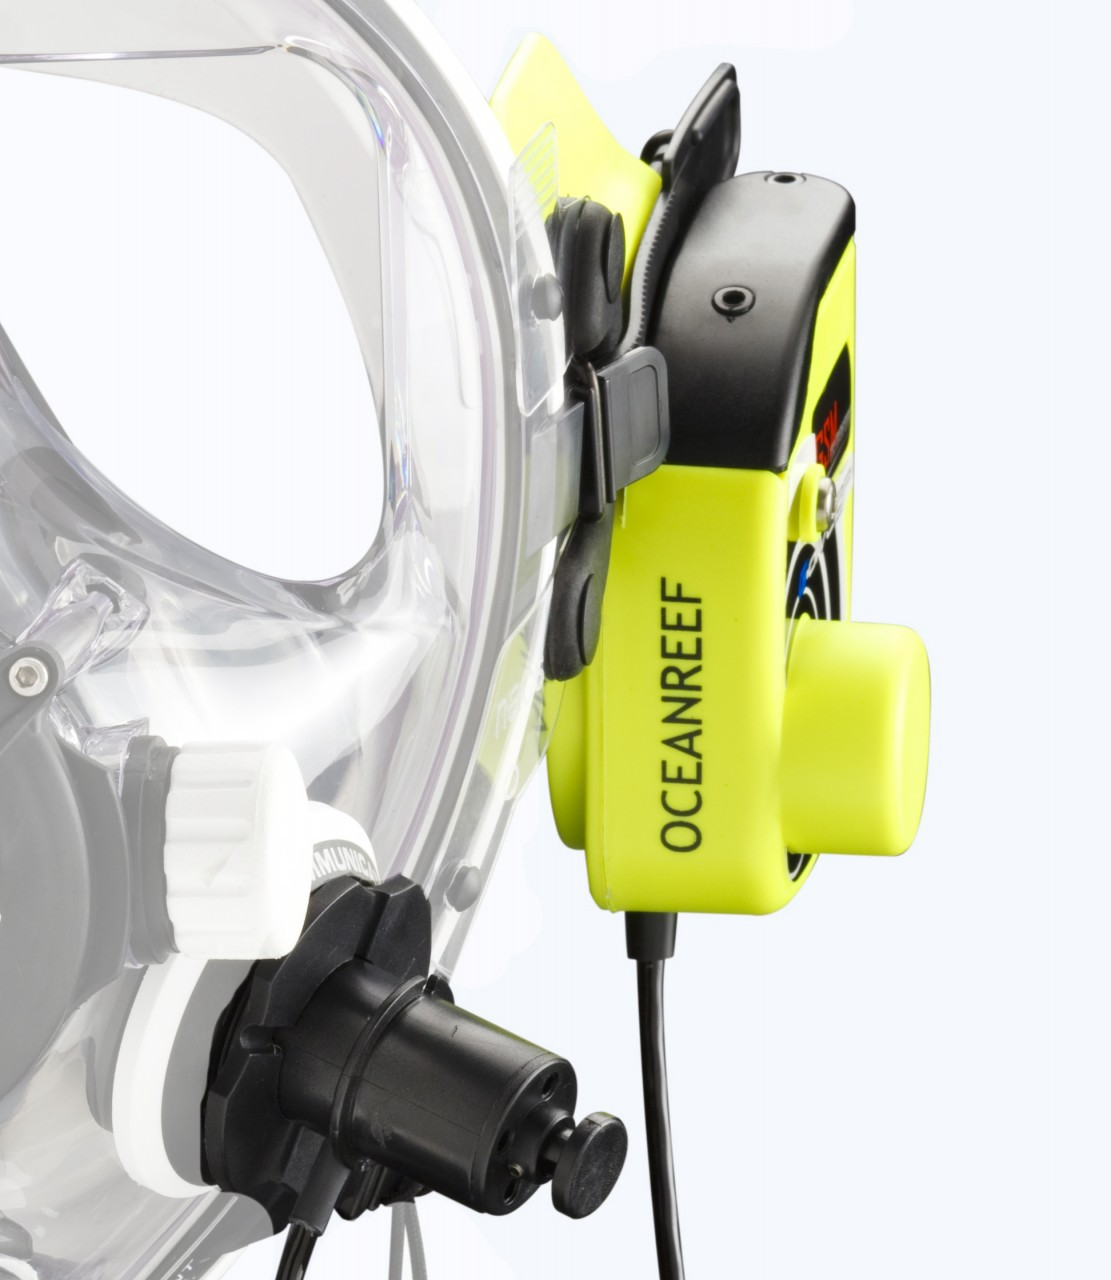 gsmgdivers__41539.1301515018.1280.1280